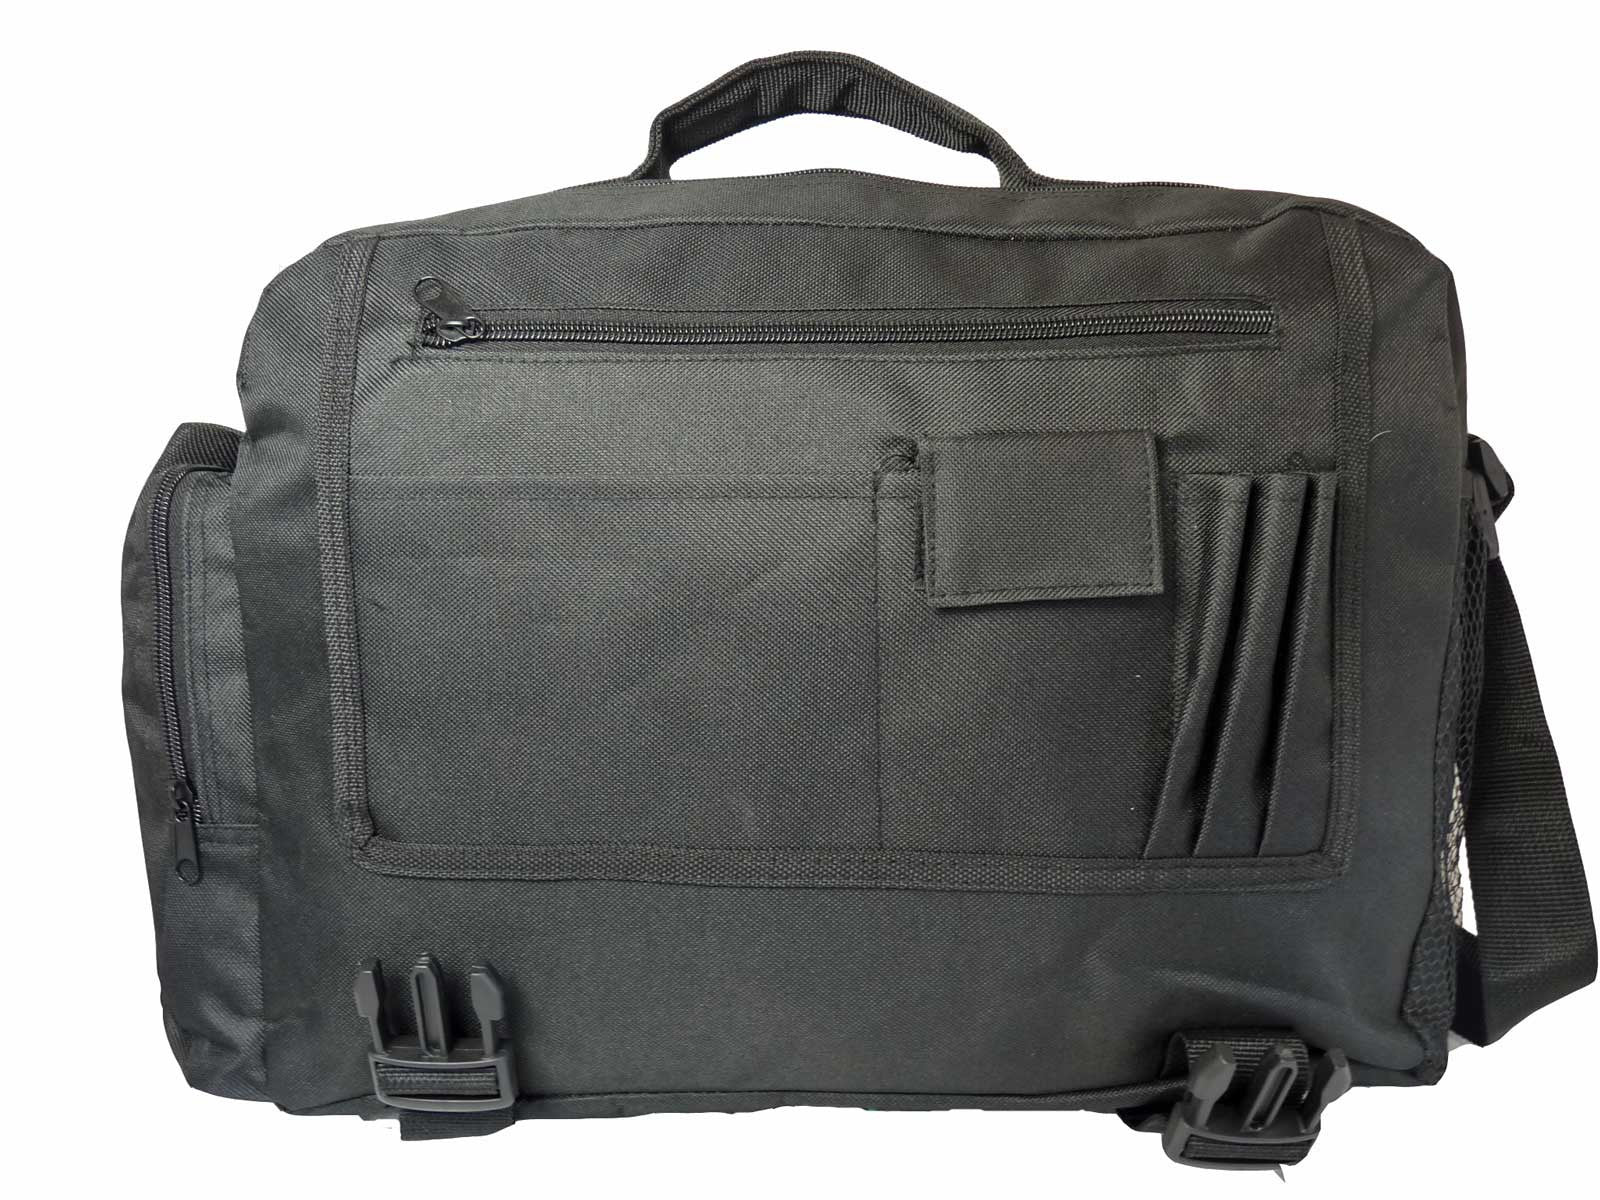 Black Dispatch Messenger Courier Bag Bags R39 inside view